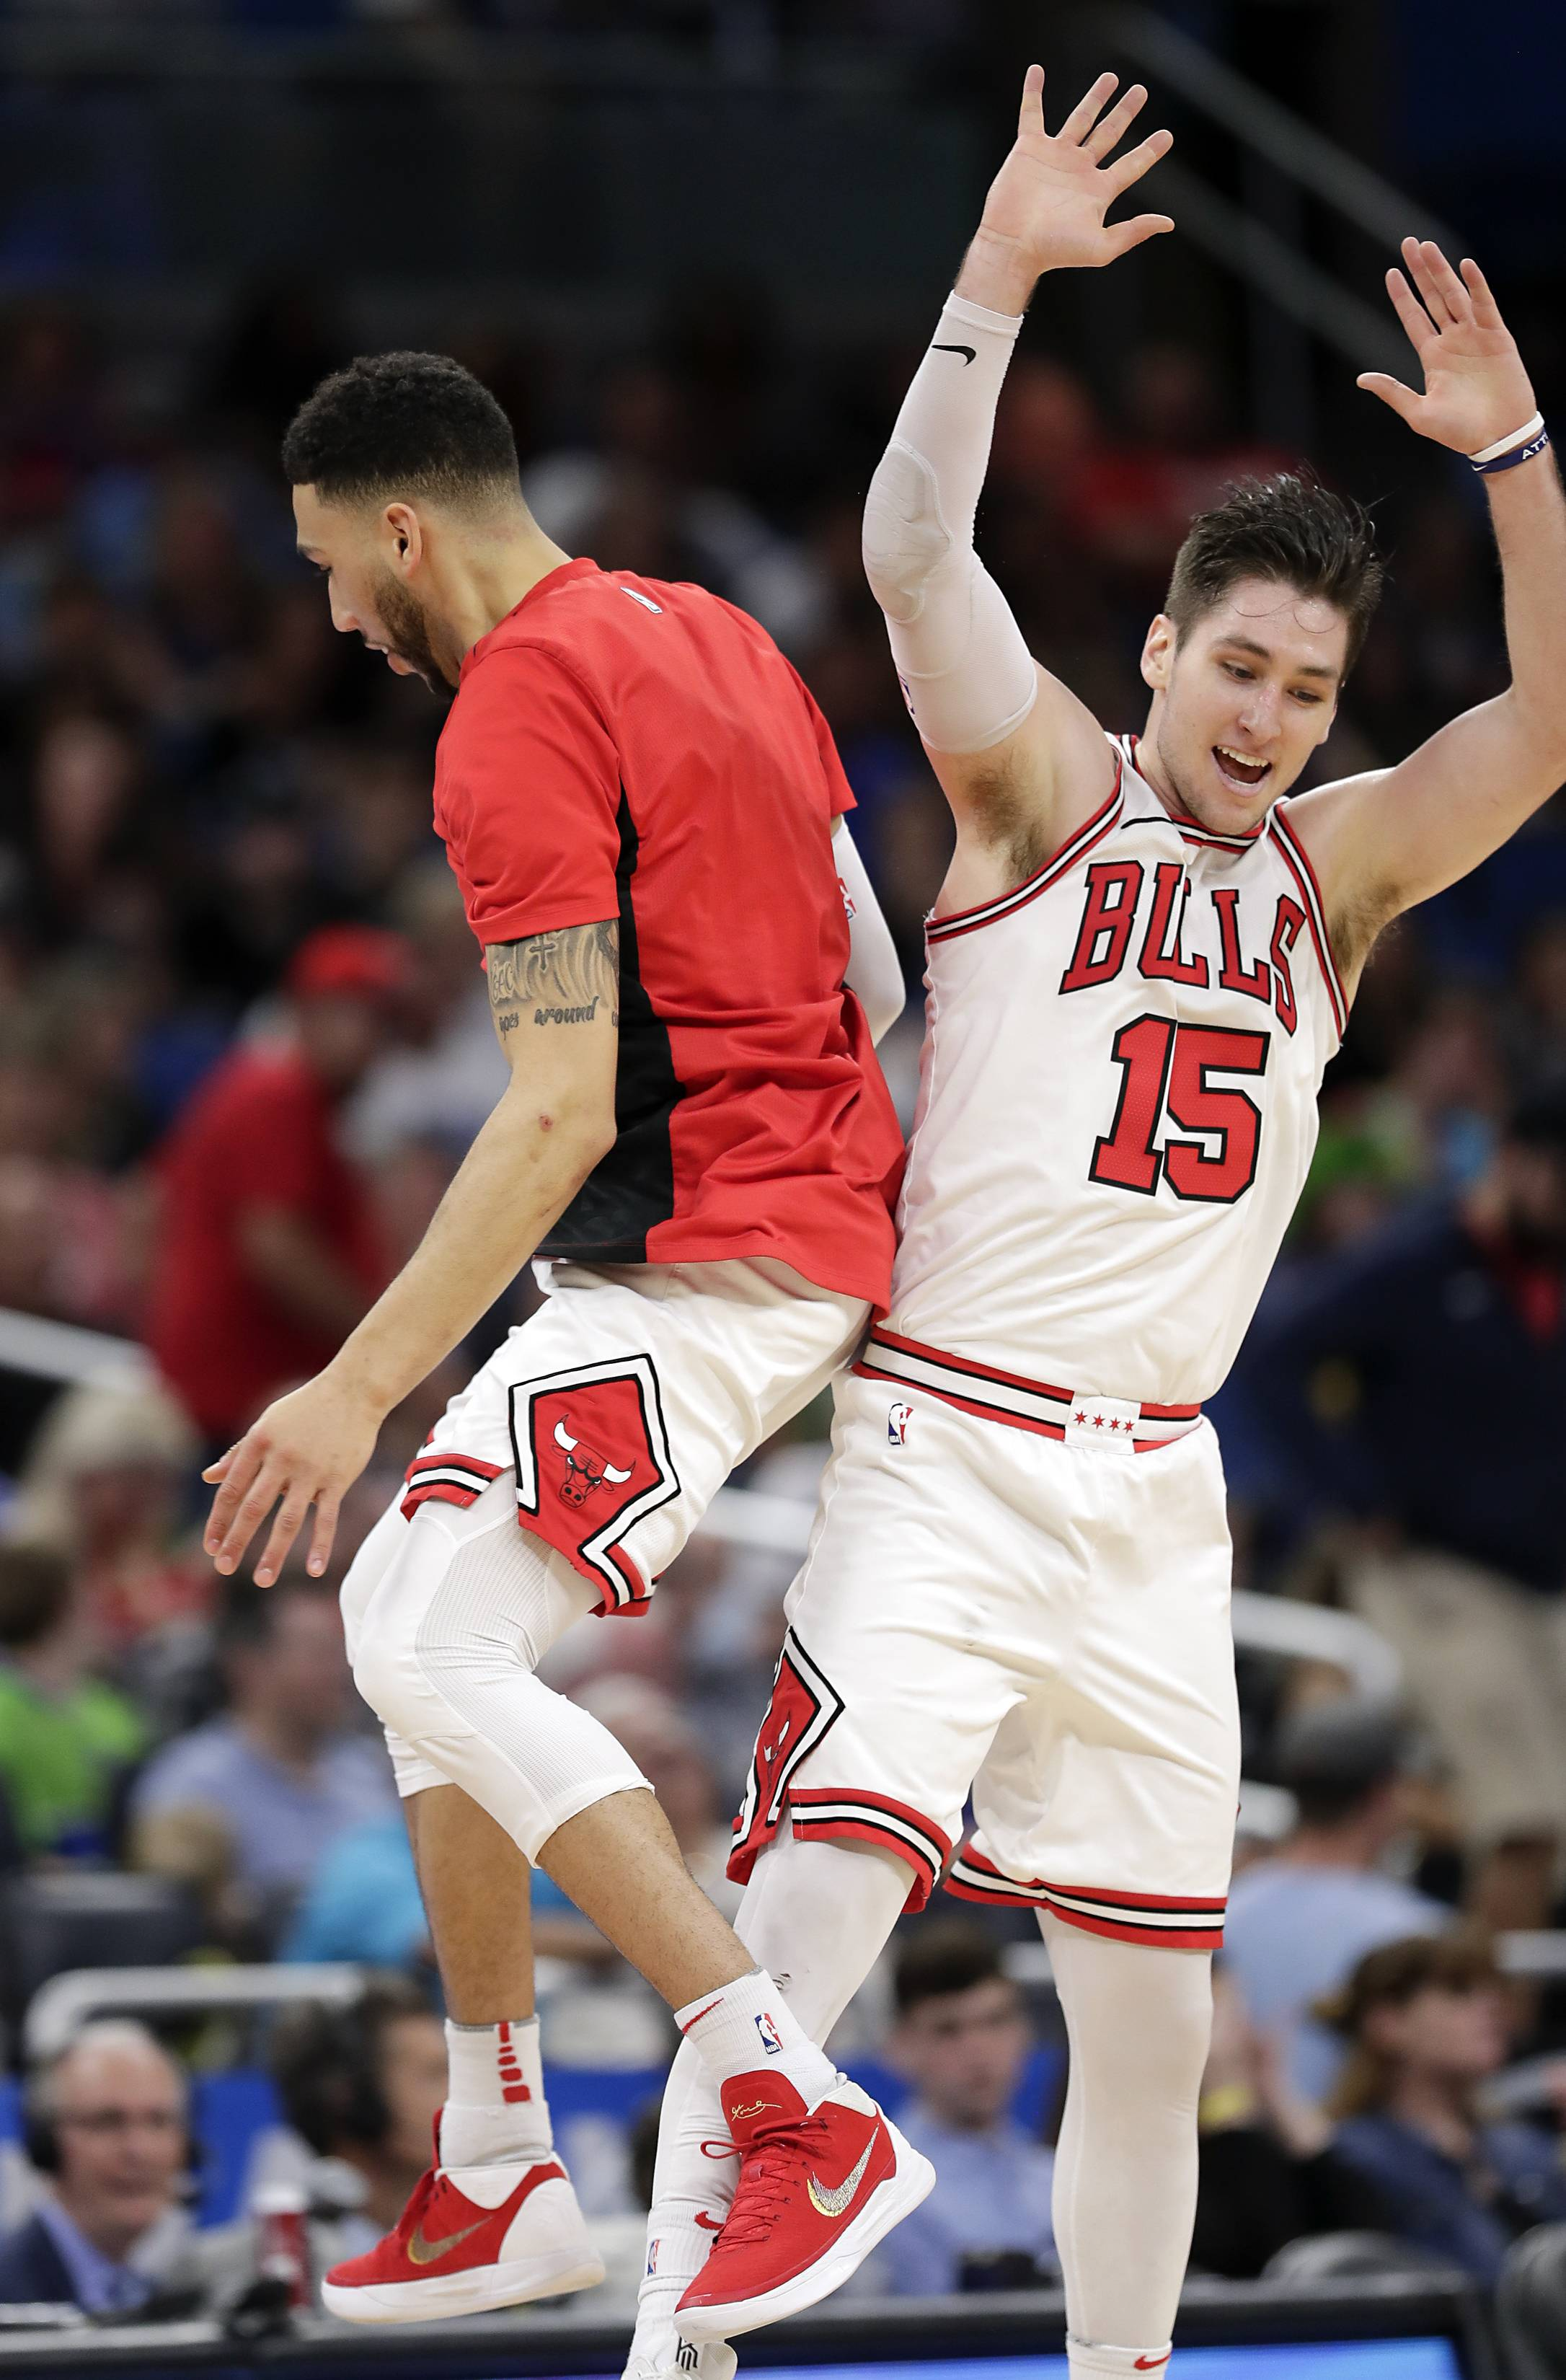 Bulls' Arcidiacono enjoyed suburban life, but is ready for a promotion